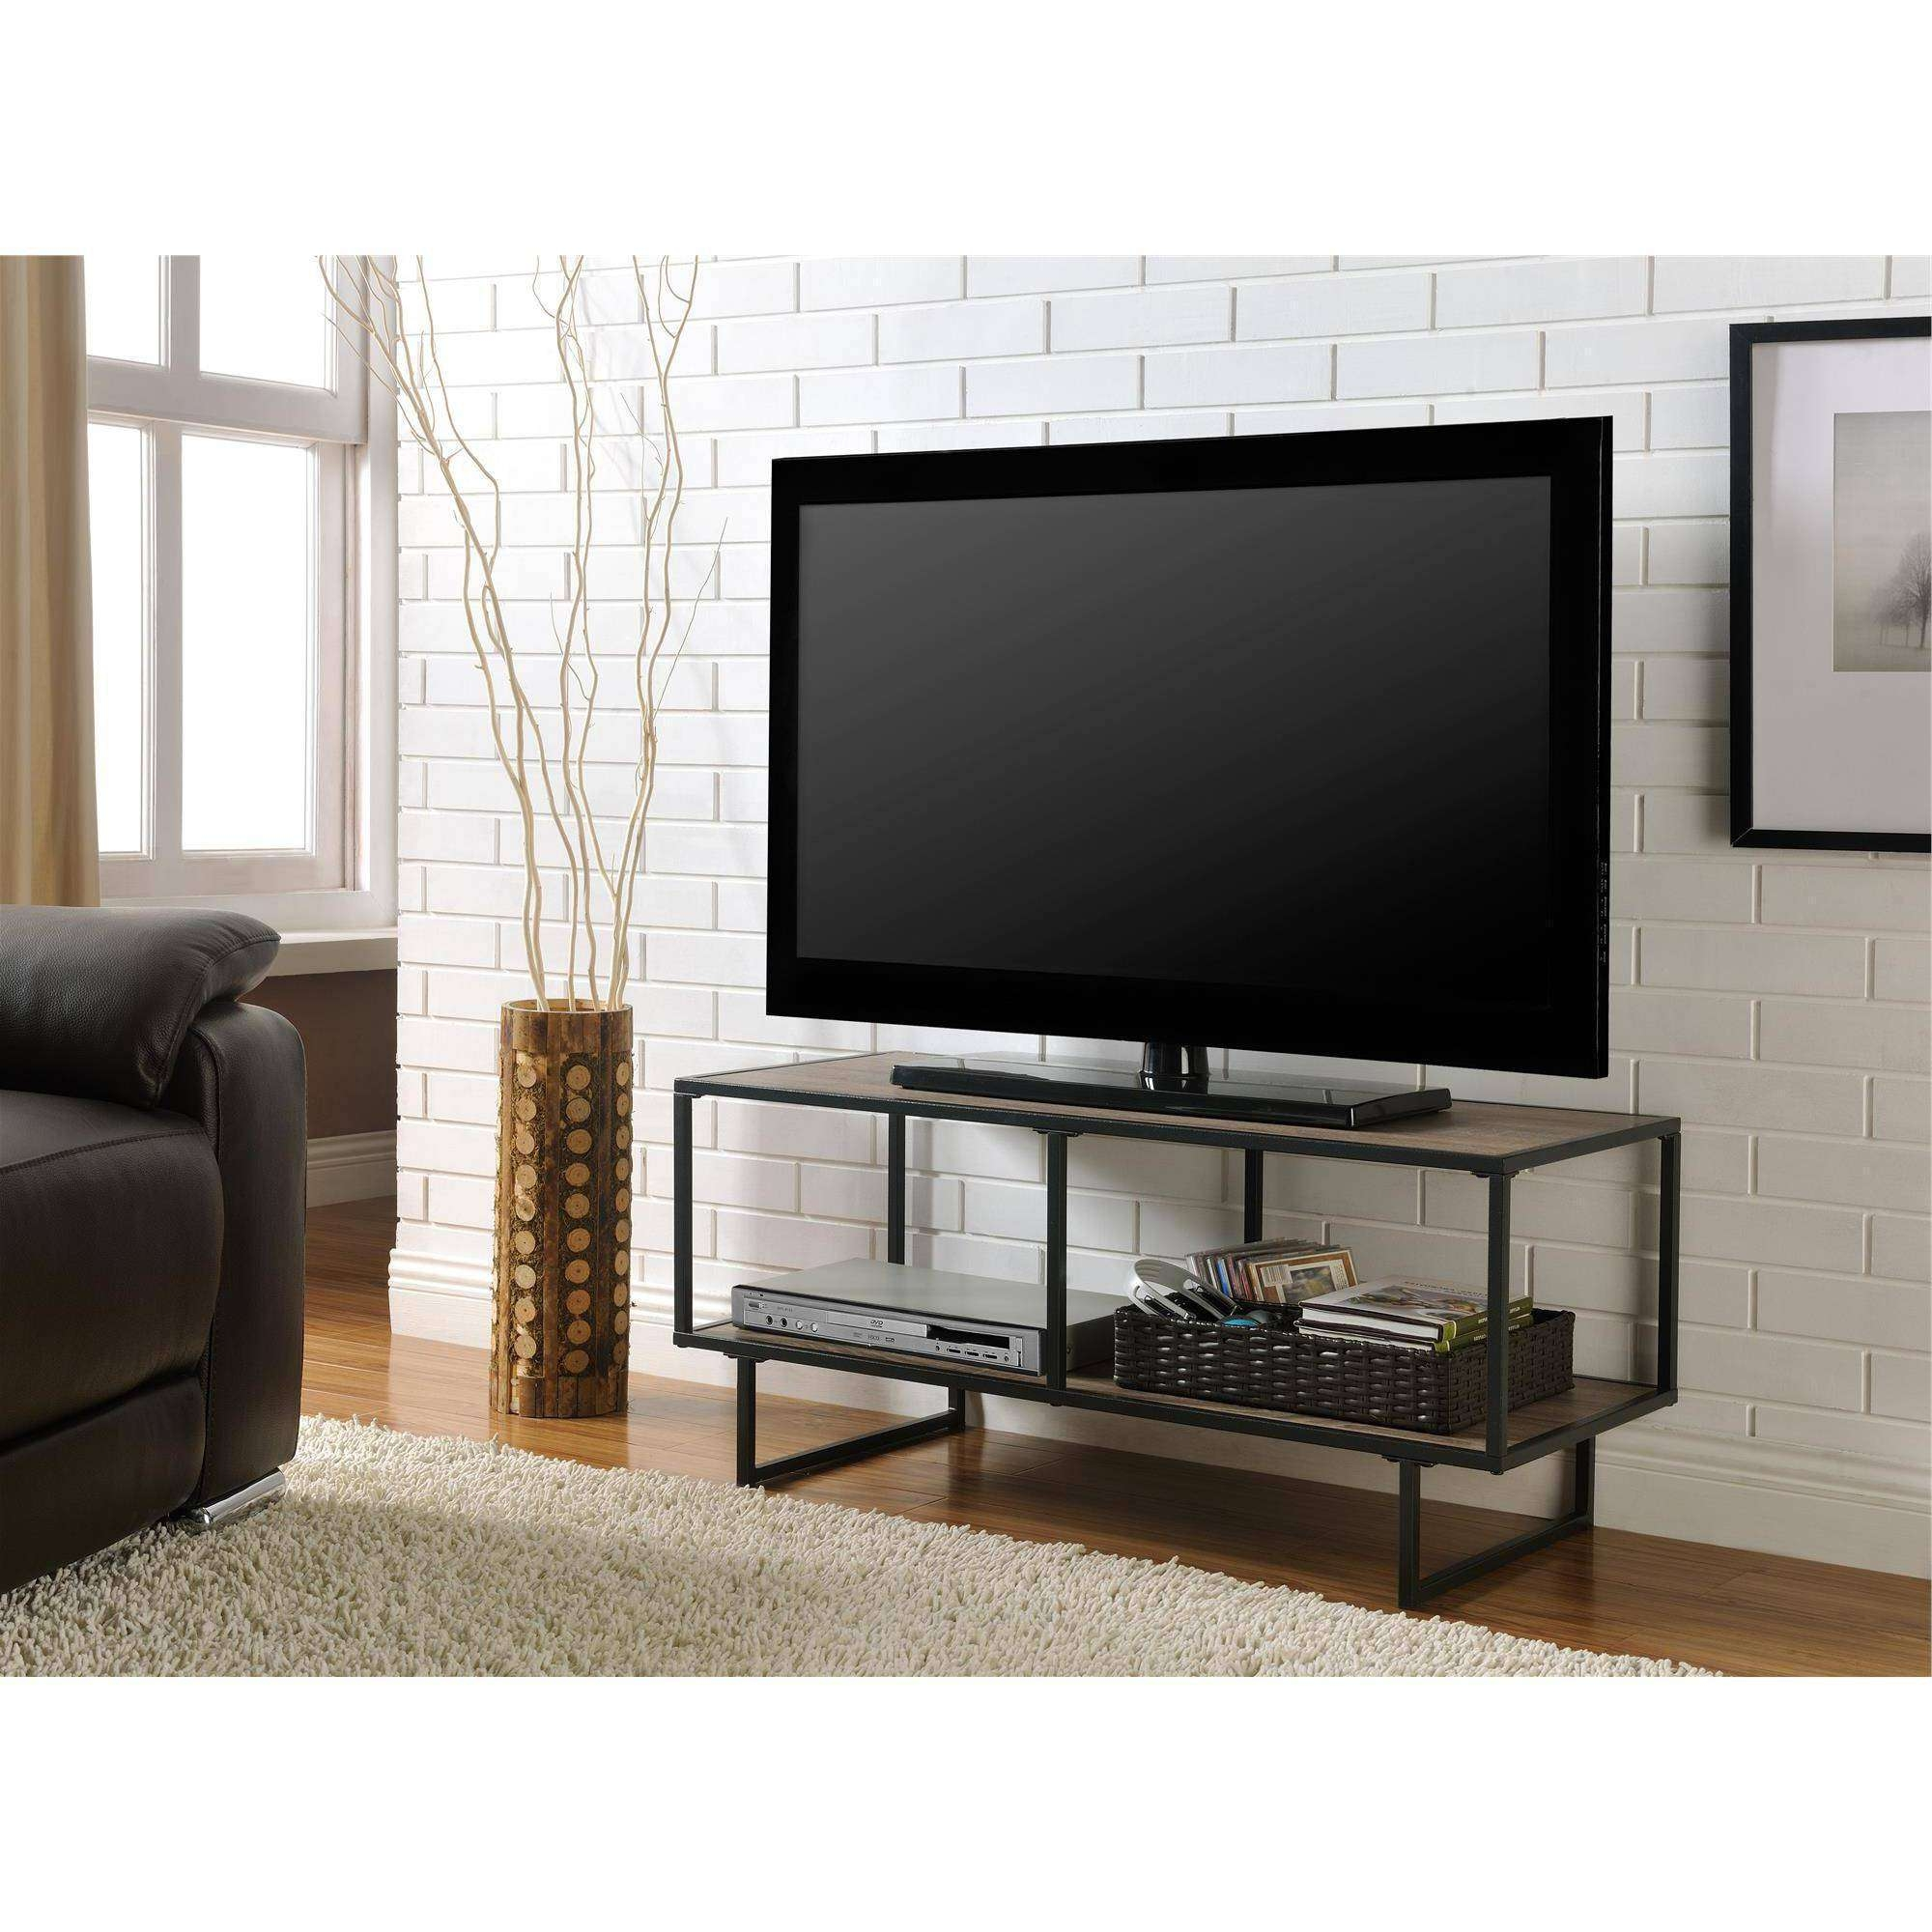 Coffee Table : Fabulous Tv Stand With Matching End Tables Fire For Skinny Tv Stands (View 2 of 15)